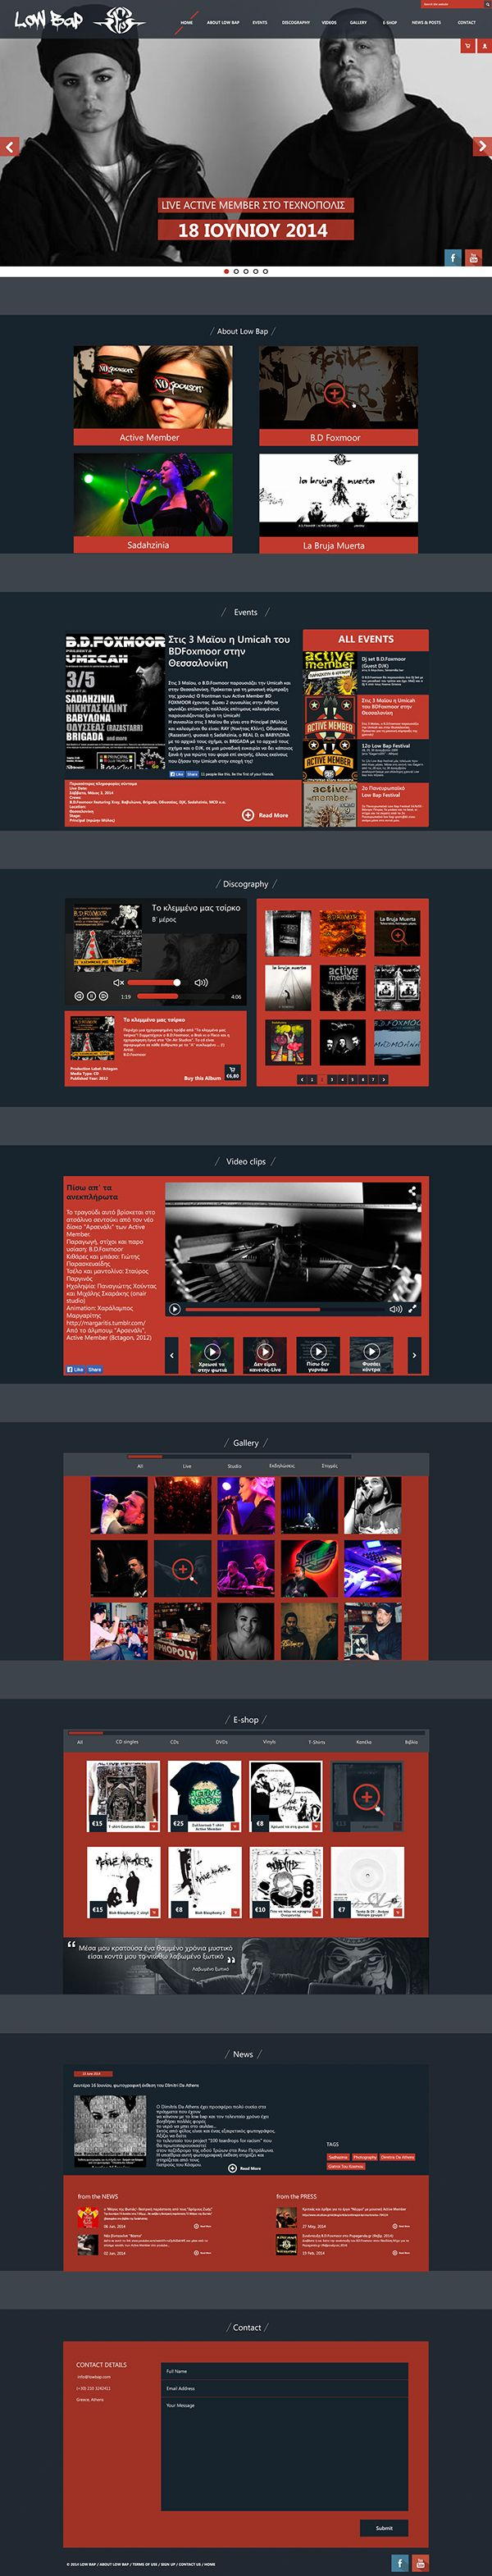 "Personal project ""Redesign Low Bap website"" on Behance"